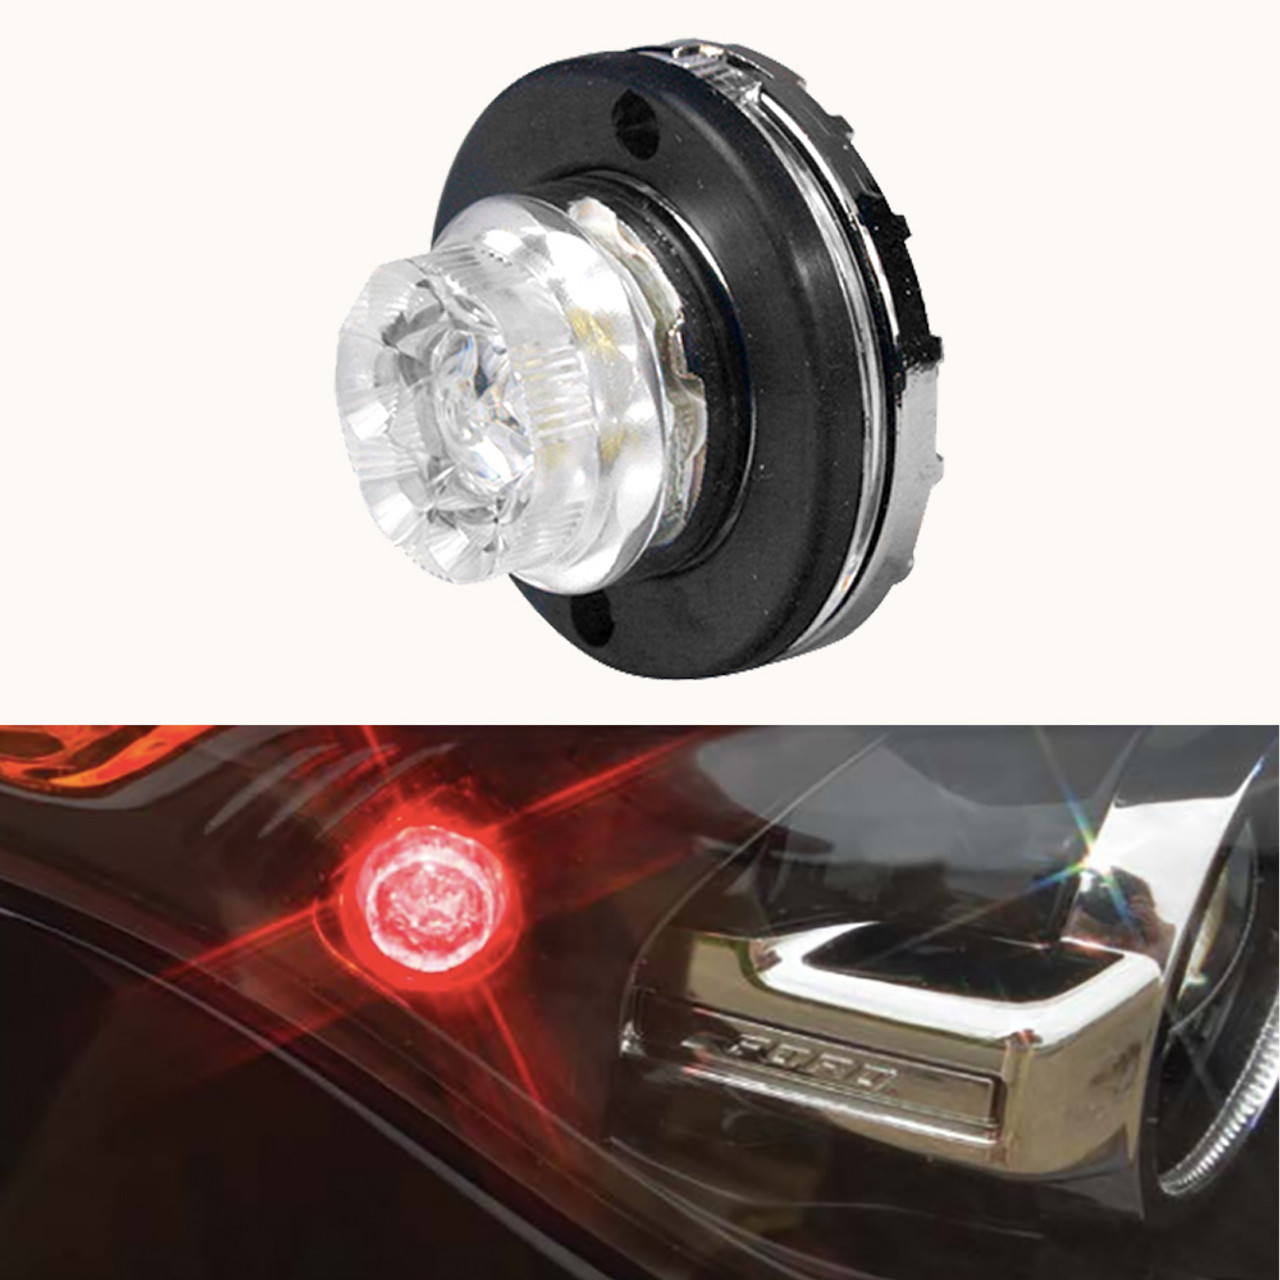 SoundOff Signal Undercover Hide Away Corner LED Inserts, for Tail-Lights,  Headlights, or optional surface flush mount, screw-in, universal, 10 or 25